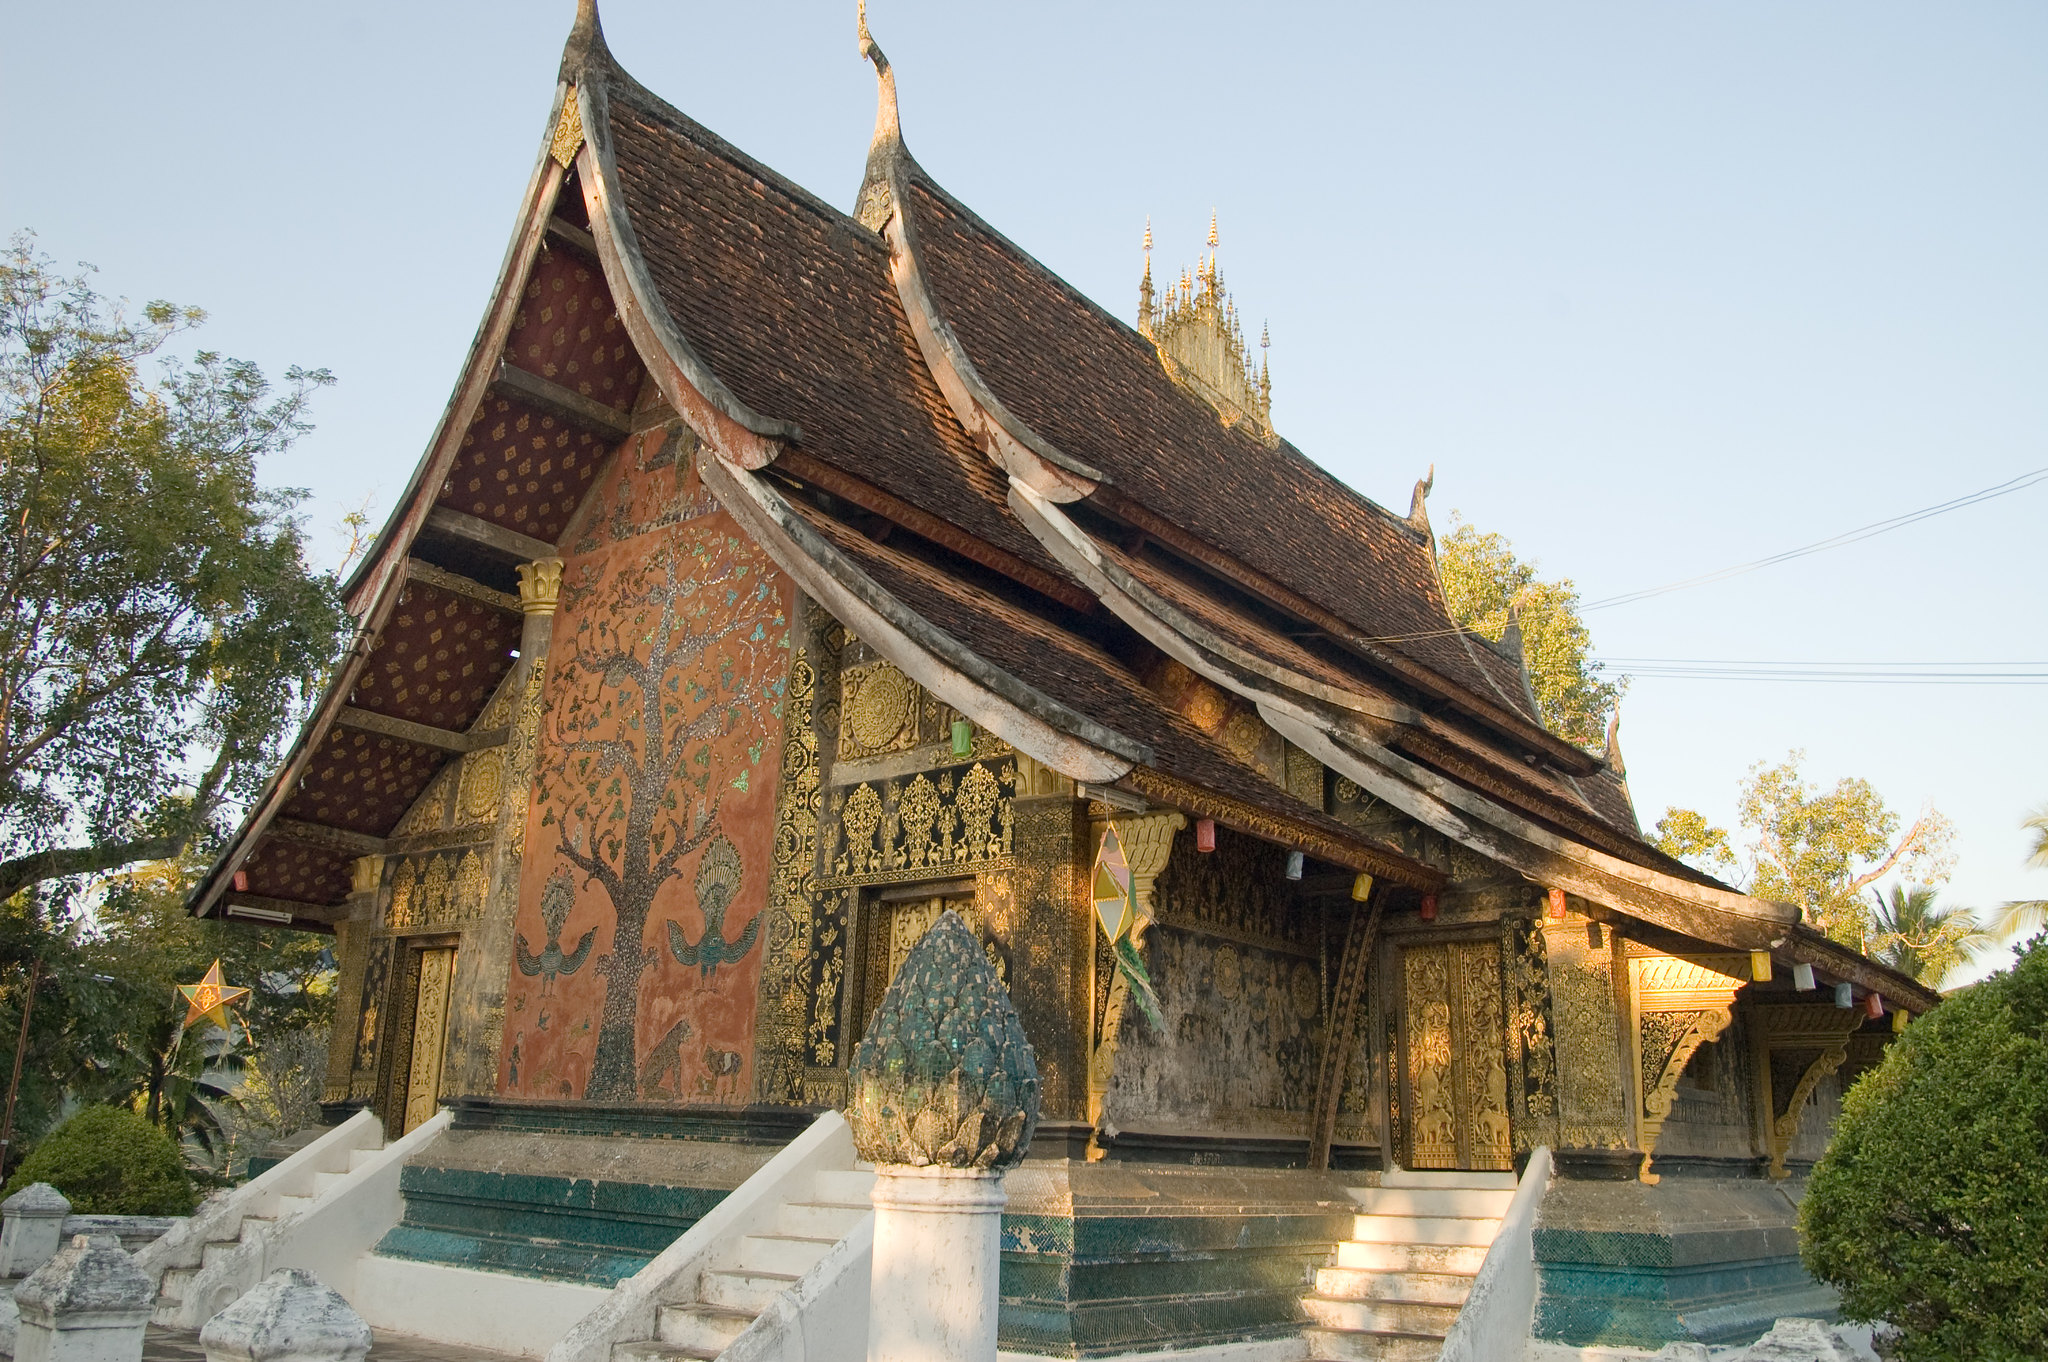 10 Best Things to do in Luang Prabang, Laos